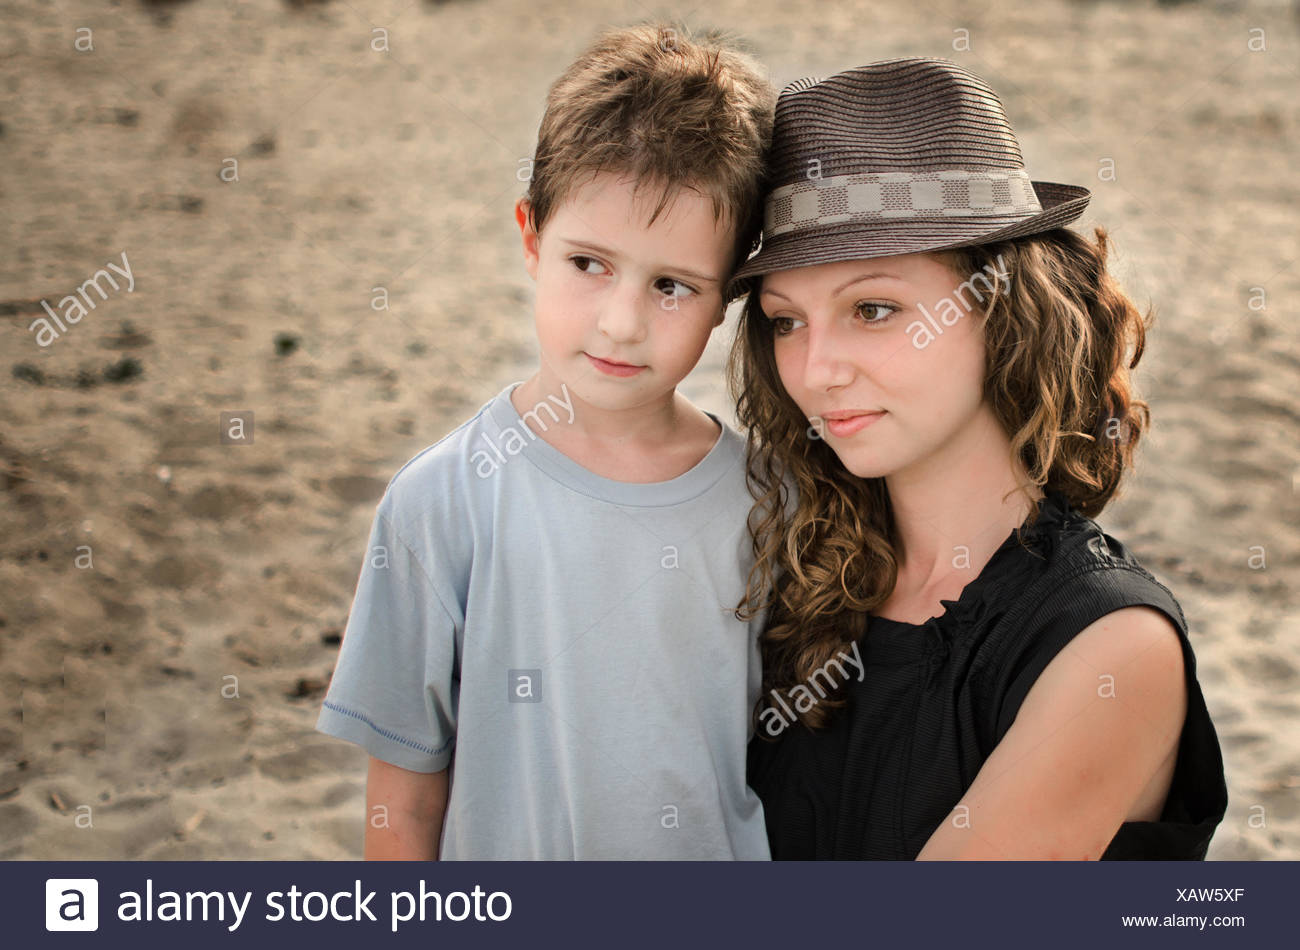 Portrait of a young woman and boy - Stock Image